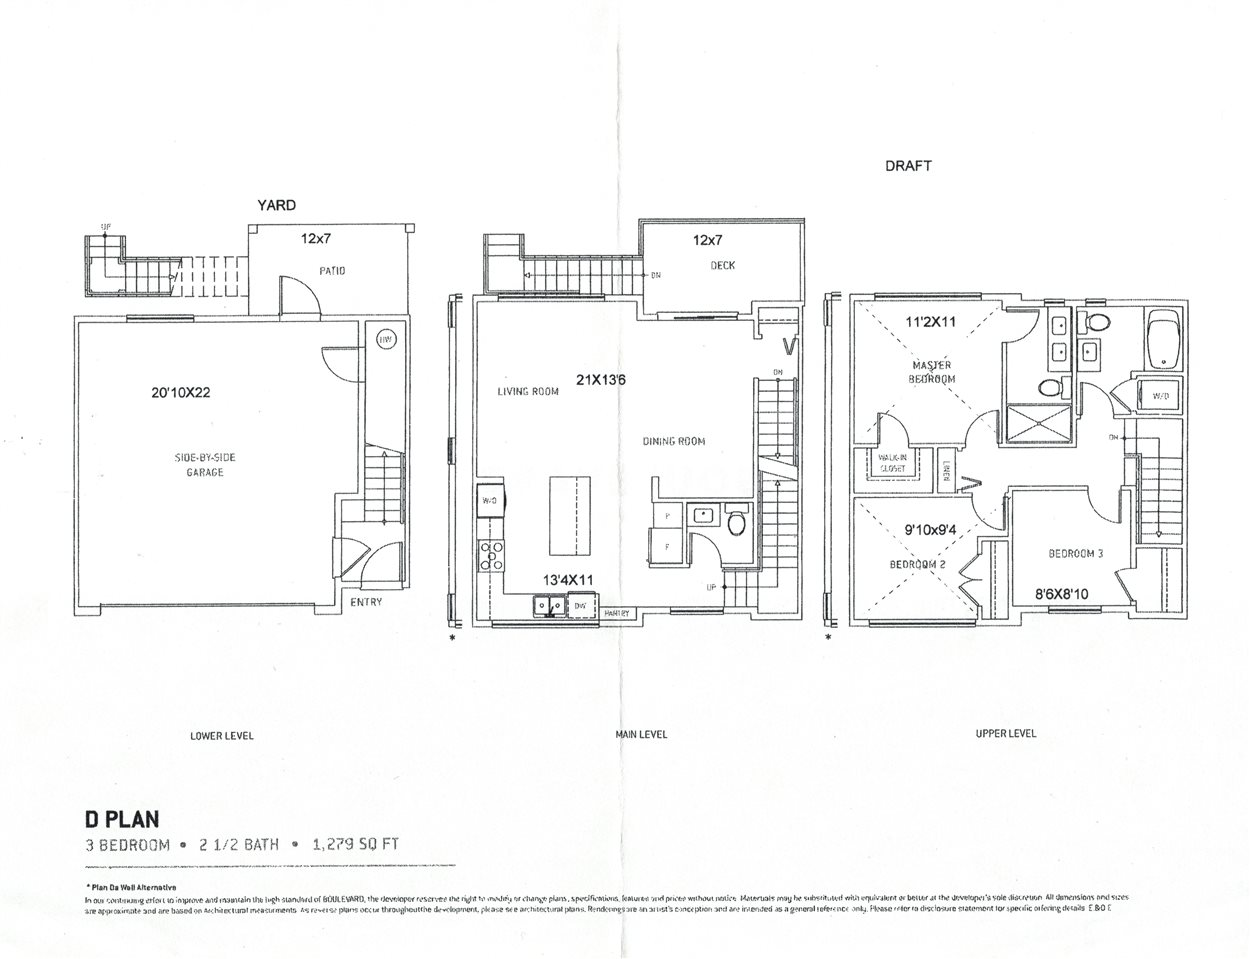 In the heart of Willoughby area. Townhouse is in premium location! Cross 208 to Willoughby TownCenter to reach out for Restaurants, Independent, Shoppers, RBC and TD bank, Dentals, and more, and yet, more building is on the way. 7 mins drives to hwy to Vancouver, or simply 7 mins drive to Carvoth Exchange and take bus 555 to Lougheed TownCenter Skytrain. 8 mins drive to Costco or a bit further to Langley Center. Very very close to Richard Bulpitt Elementary and Willoughby Elementary, also within the catchment to the only Secondary School with I.B Program - R.E. Mountain. Part of the development is already occupied, so you are welcome to take a drive around! Nicely design and finish with unbeatable location, this is the home your family deserve.